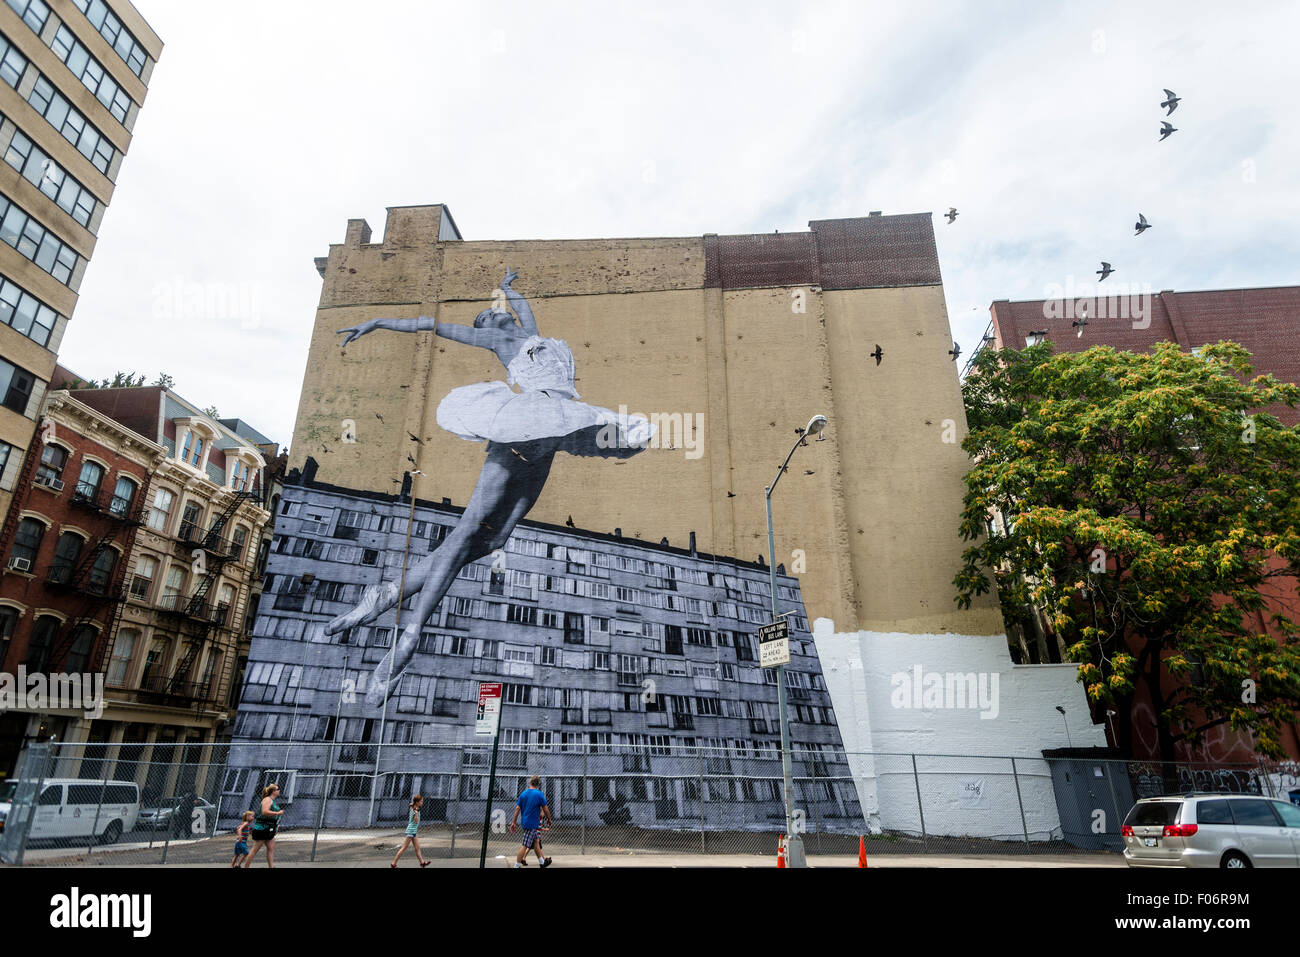 new-york-ny-8-august-2015-mural-by-stree